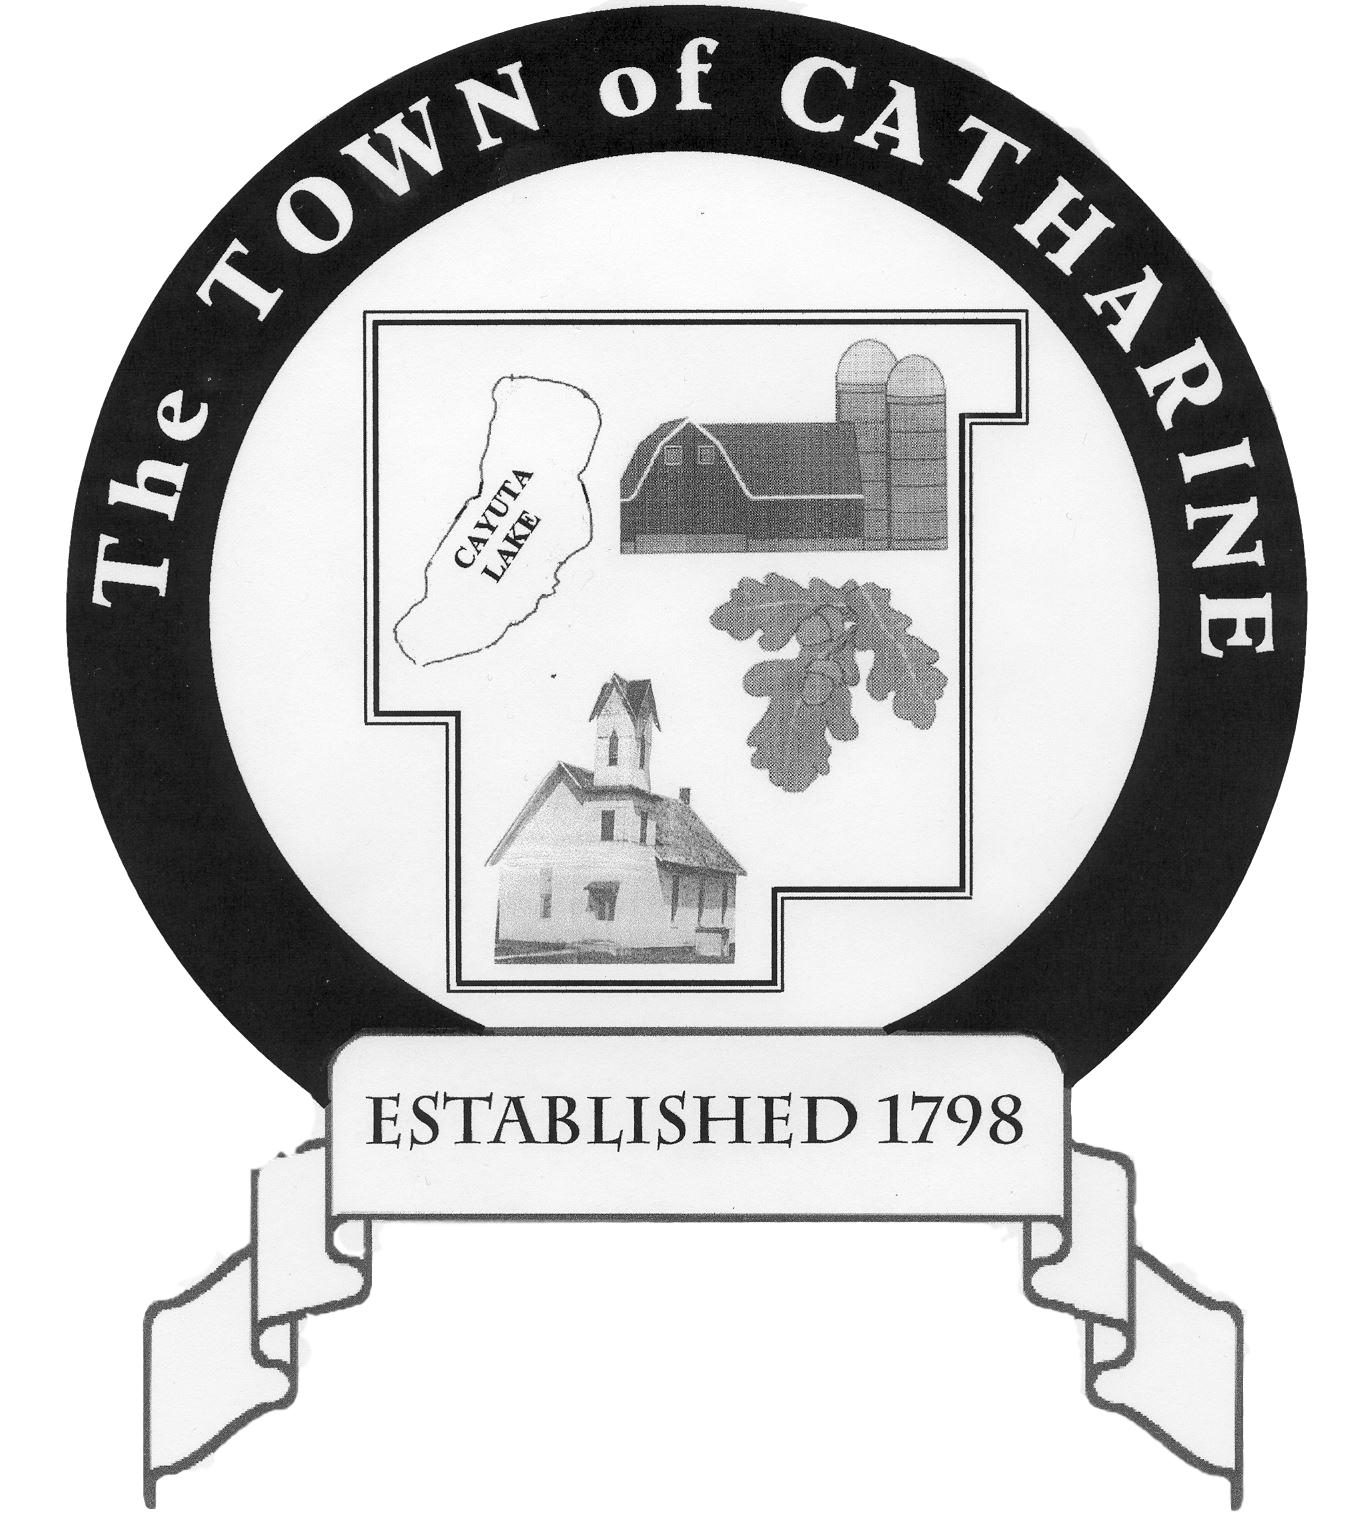 Town of Catharine